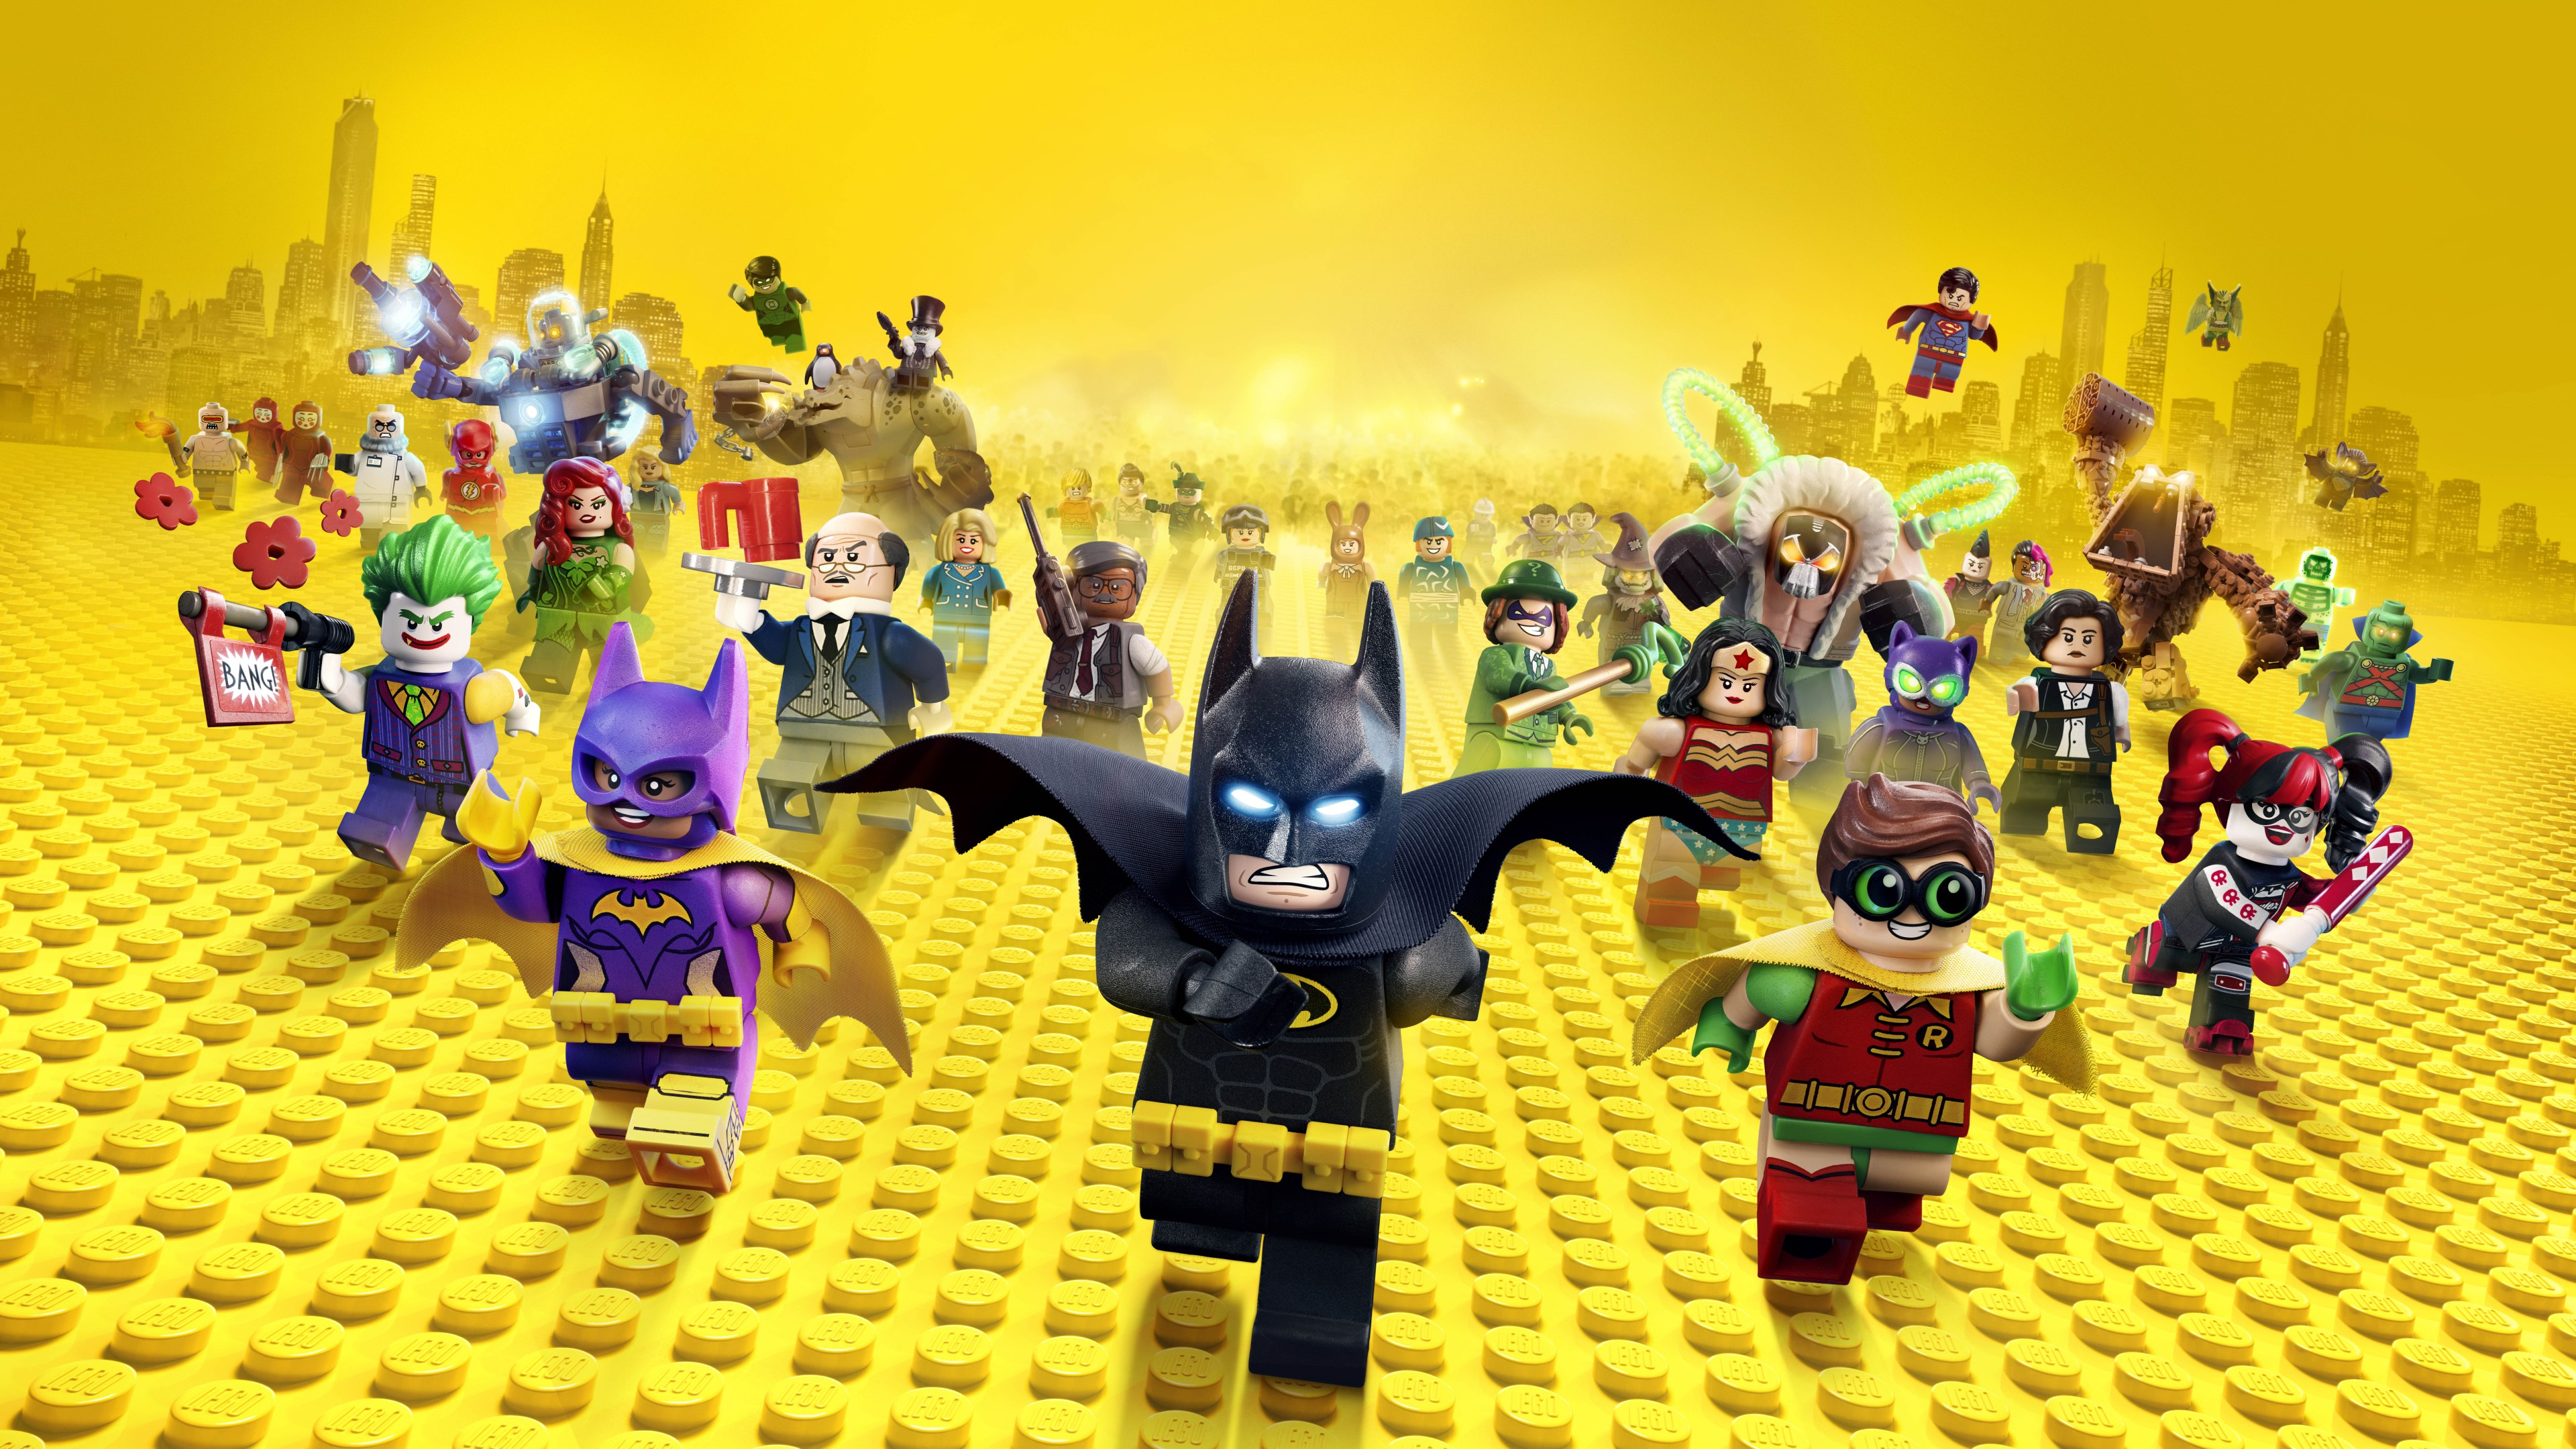 the lego batman 4k 1536401327 - The Lego Batman 4k - the lego batman movie wallpapers, movies wallpapers, hd-wallpapers, animated movies wallpapers, 4k-wallpapers, 2017 movies wallpapers